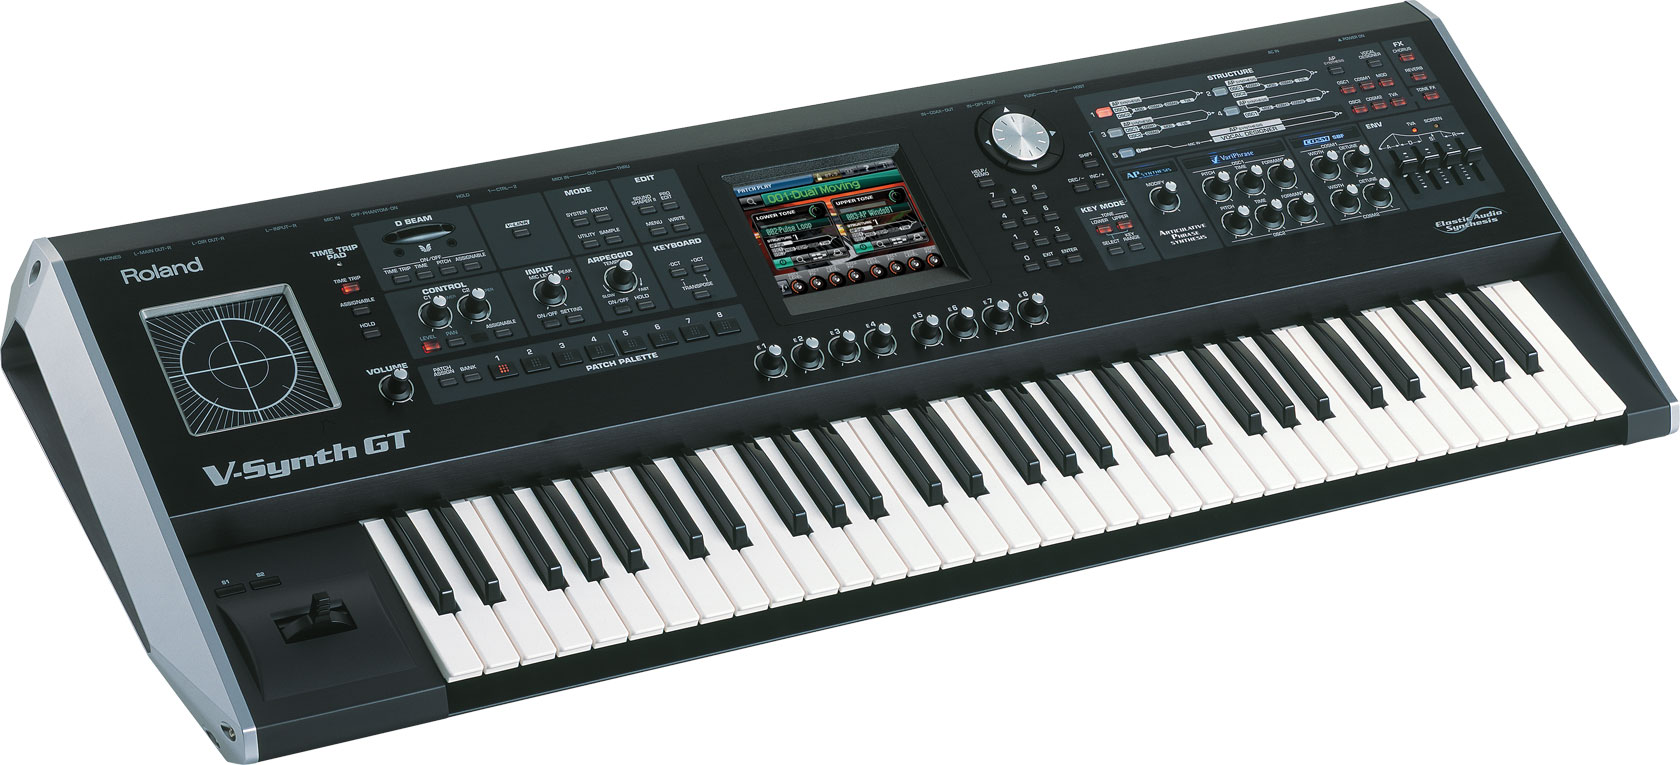 roland v synth gt elastic audio synthesizer rh roland com Roland V-Synth Patches Roland V-Synth Patches